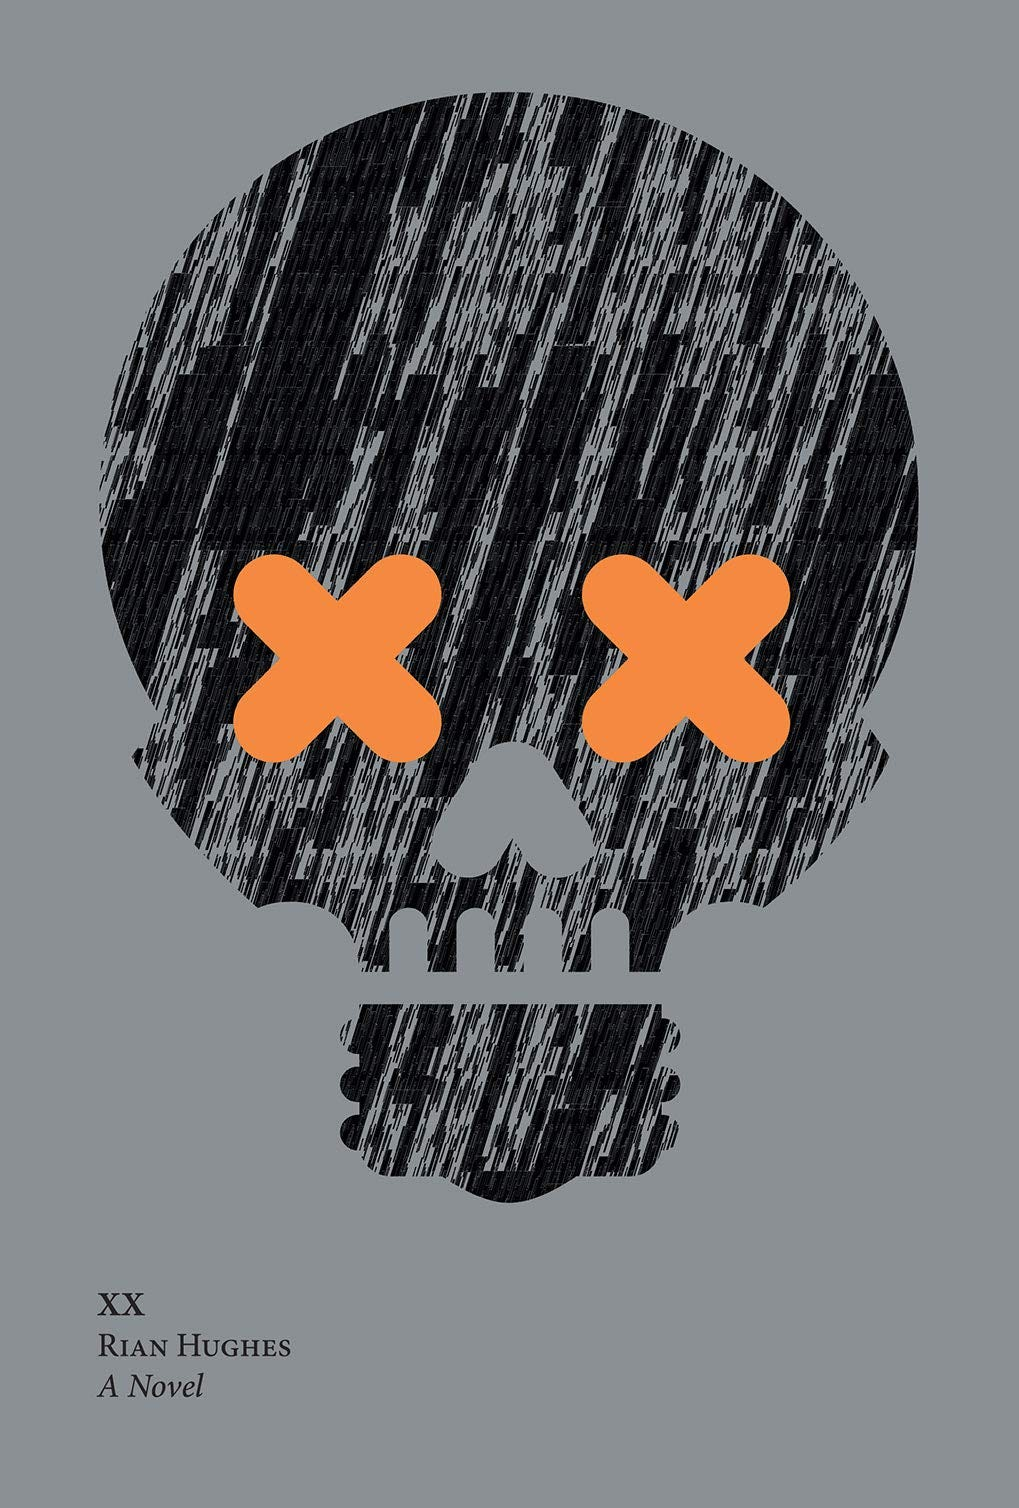 Book cover of Rian Hughes' XX: A Novel. A skull with orange X eyes is against a grey background.